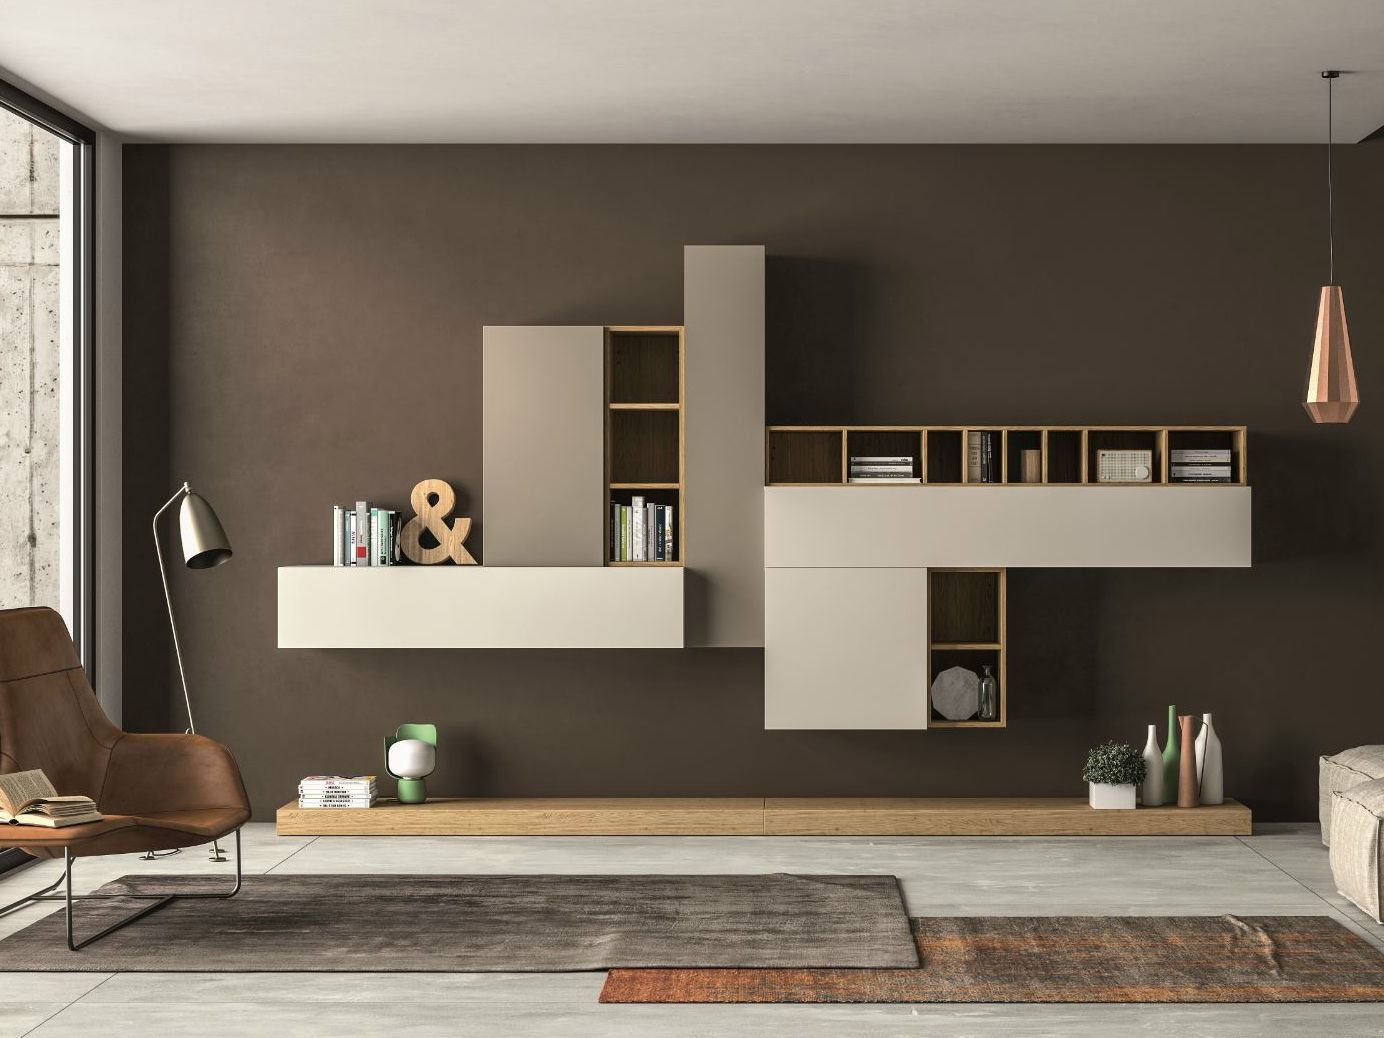 Asselle mobili ~ The giornopergiorno bookcases propose themselves as essential